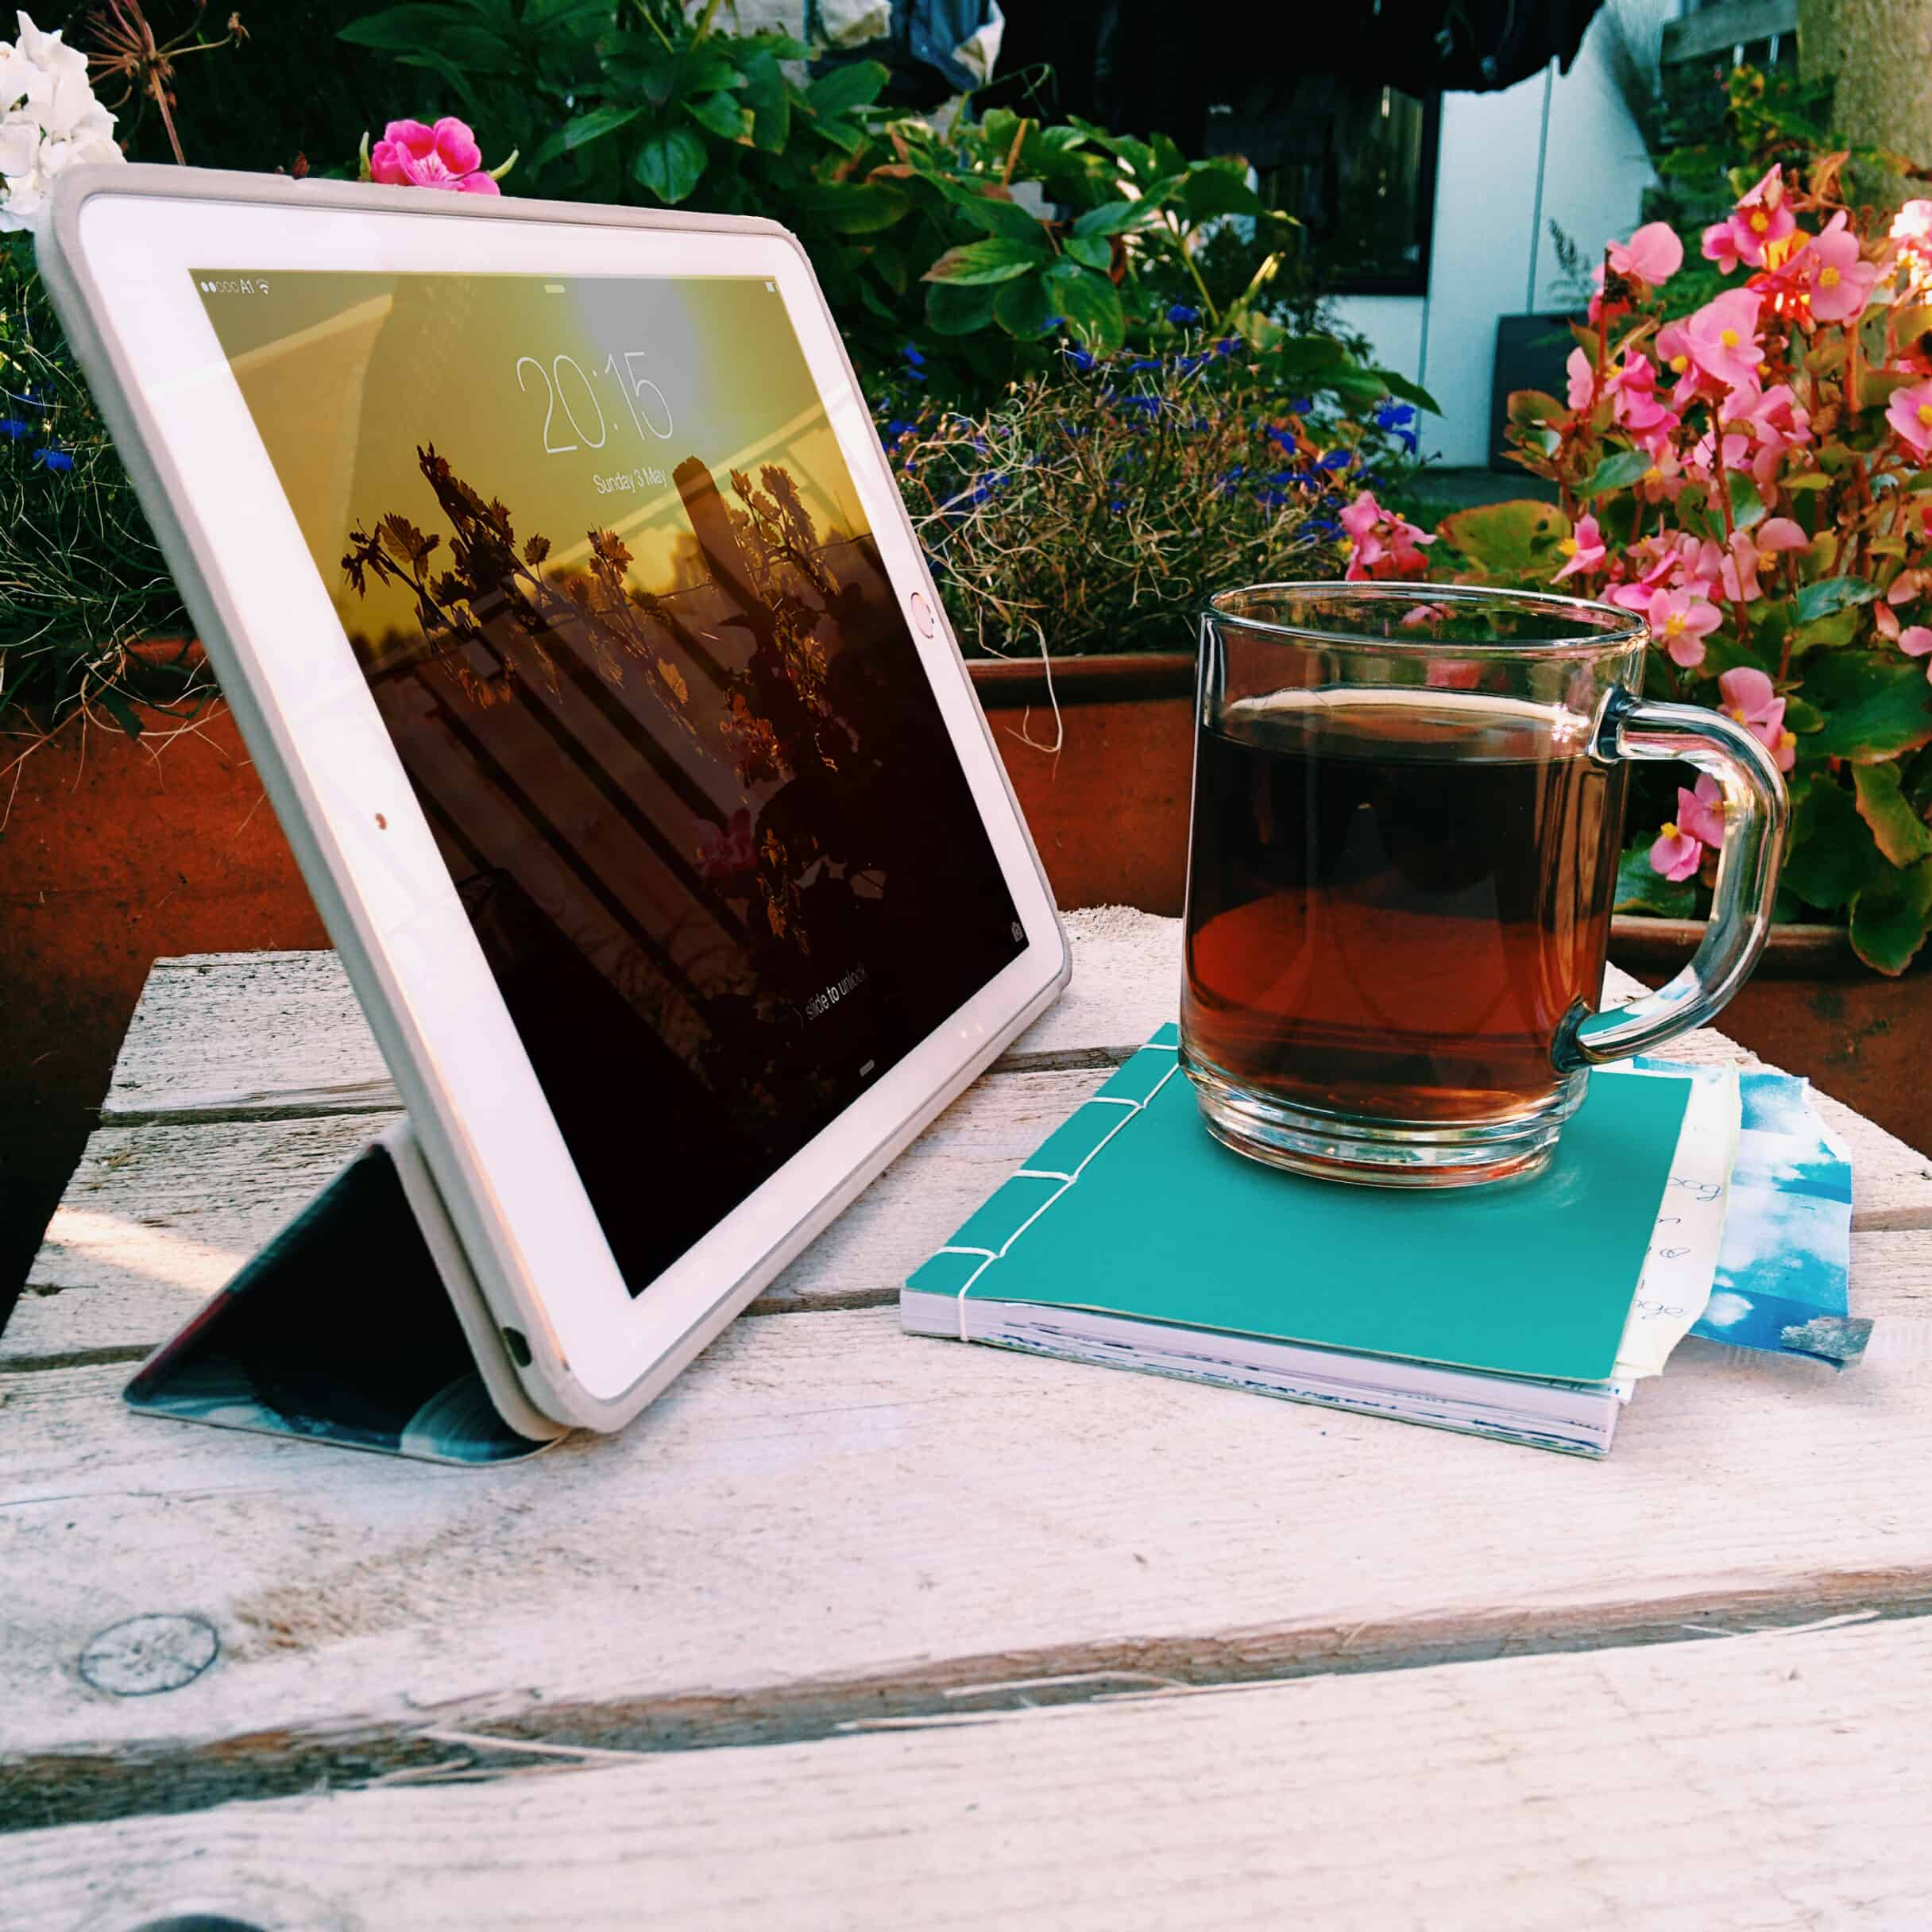 Smart case for iPad in use